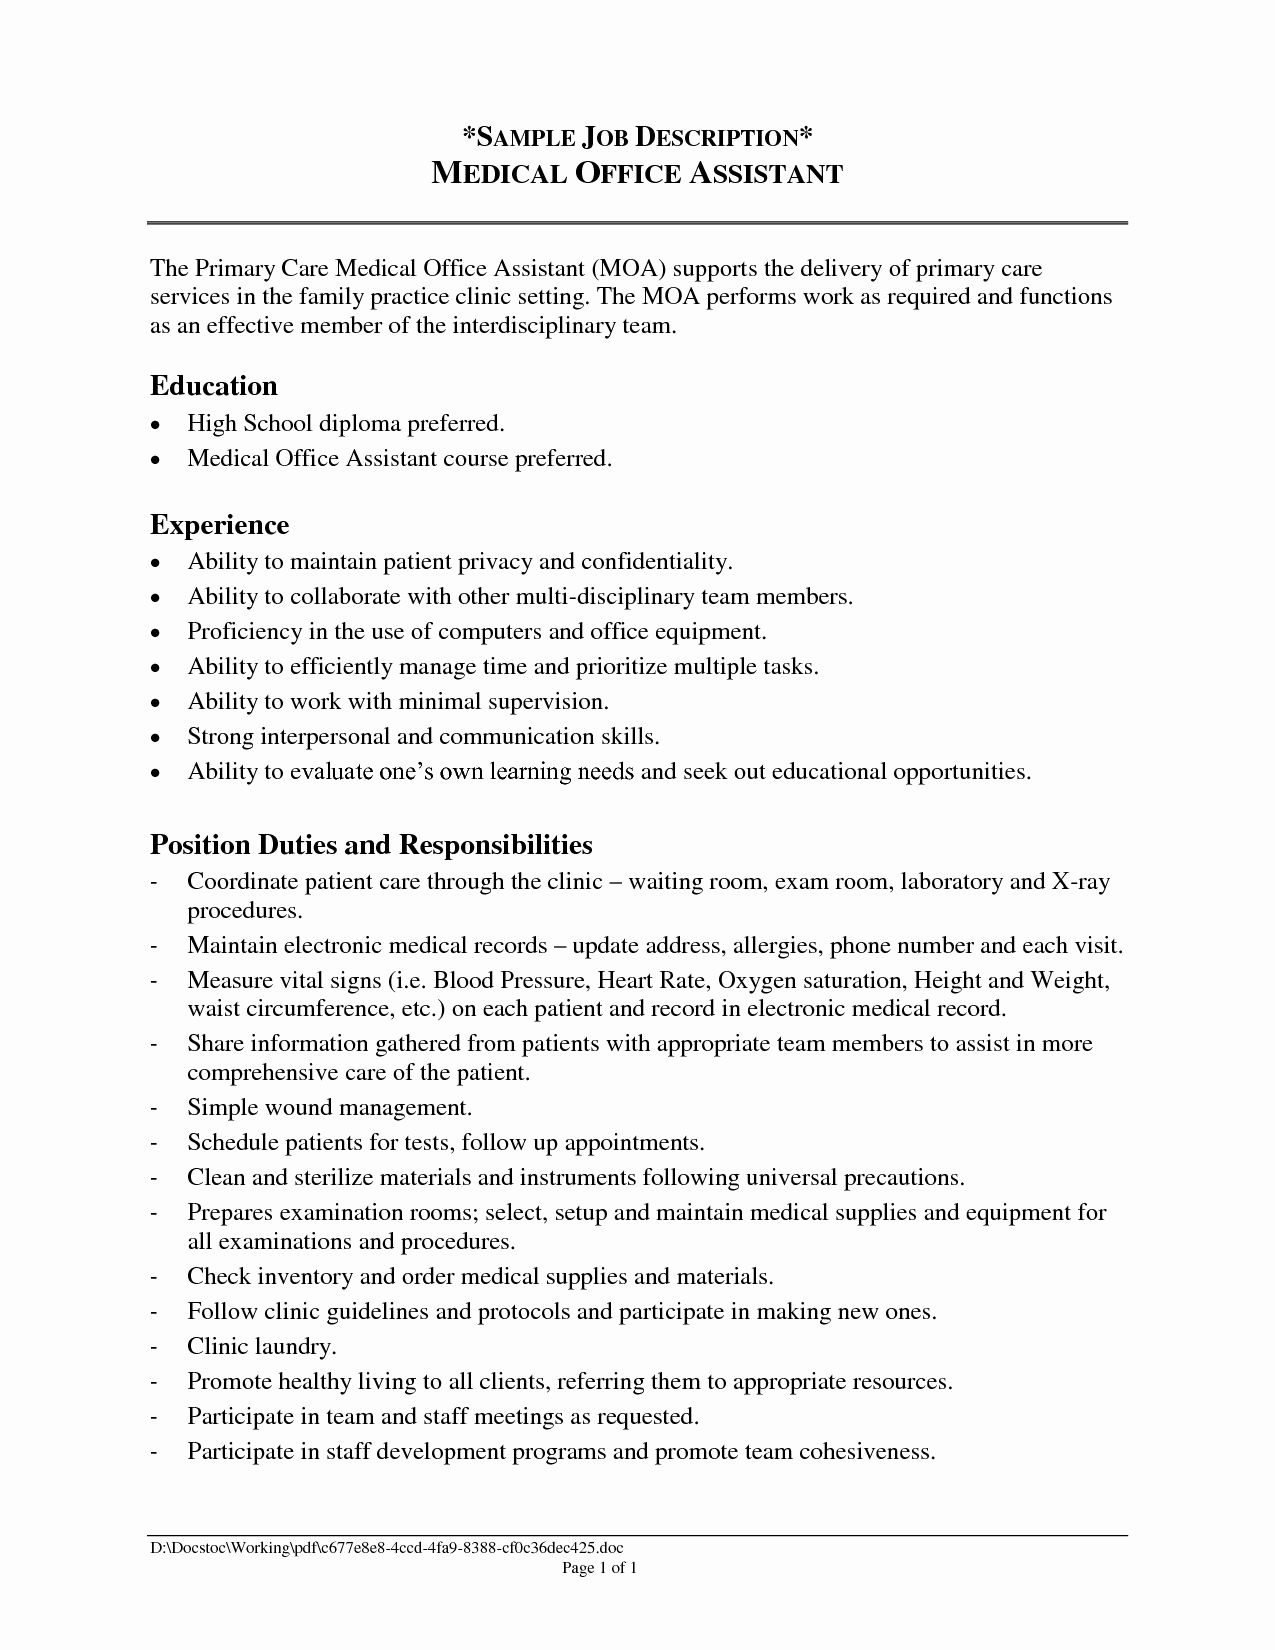 20 hr assistant job description resume in 2020 medical simple template download cv for students word company